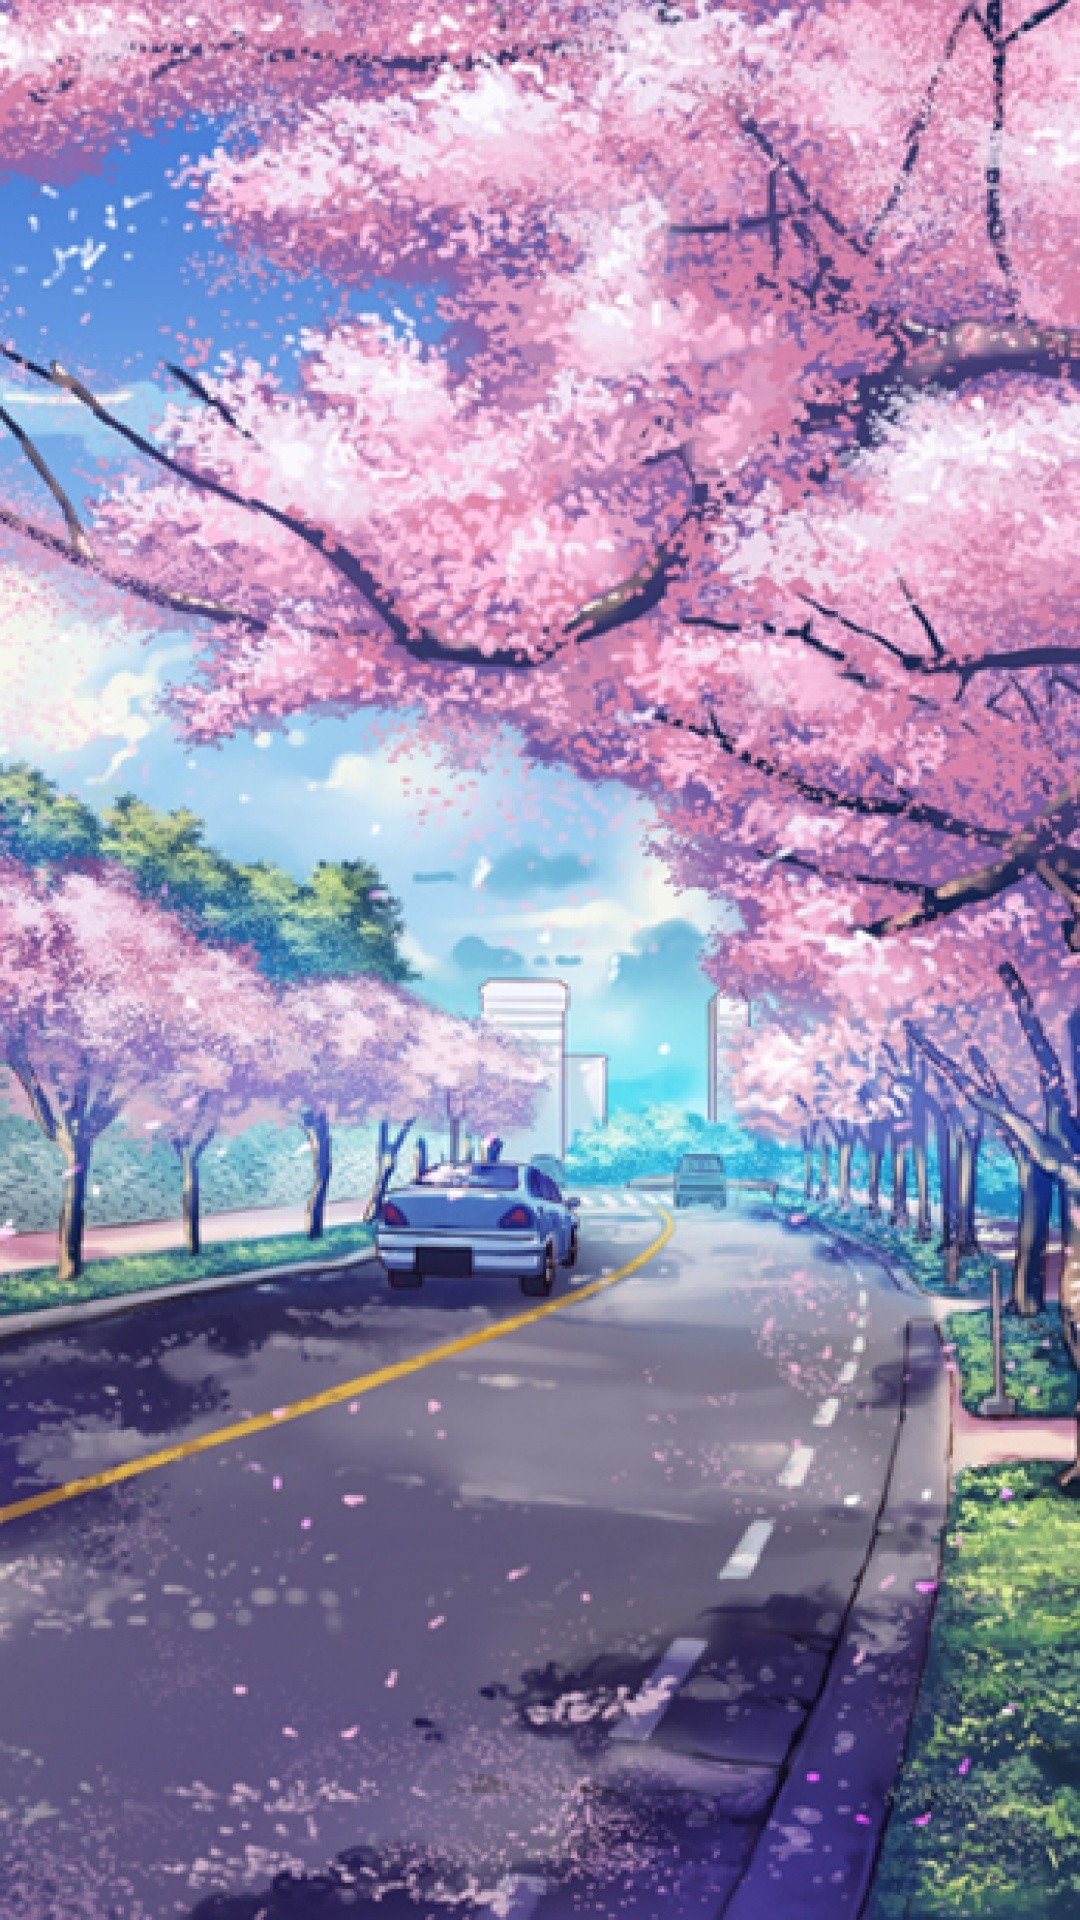 """Res: 1080x1920, Best of Anime Scenery iPhone Wallpaper Download - Search Results for """"anime  scenery iphone wallpaper"""